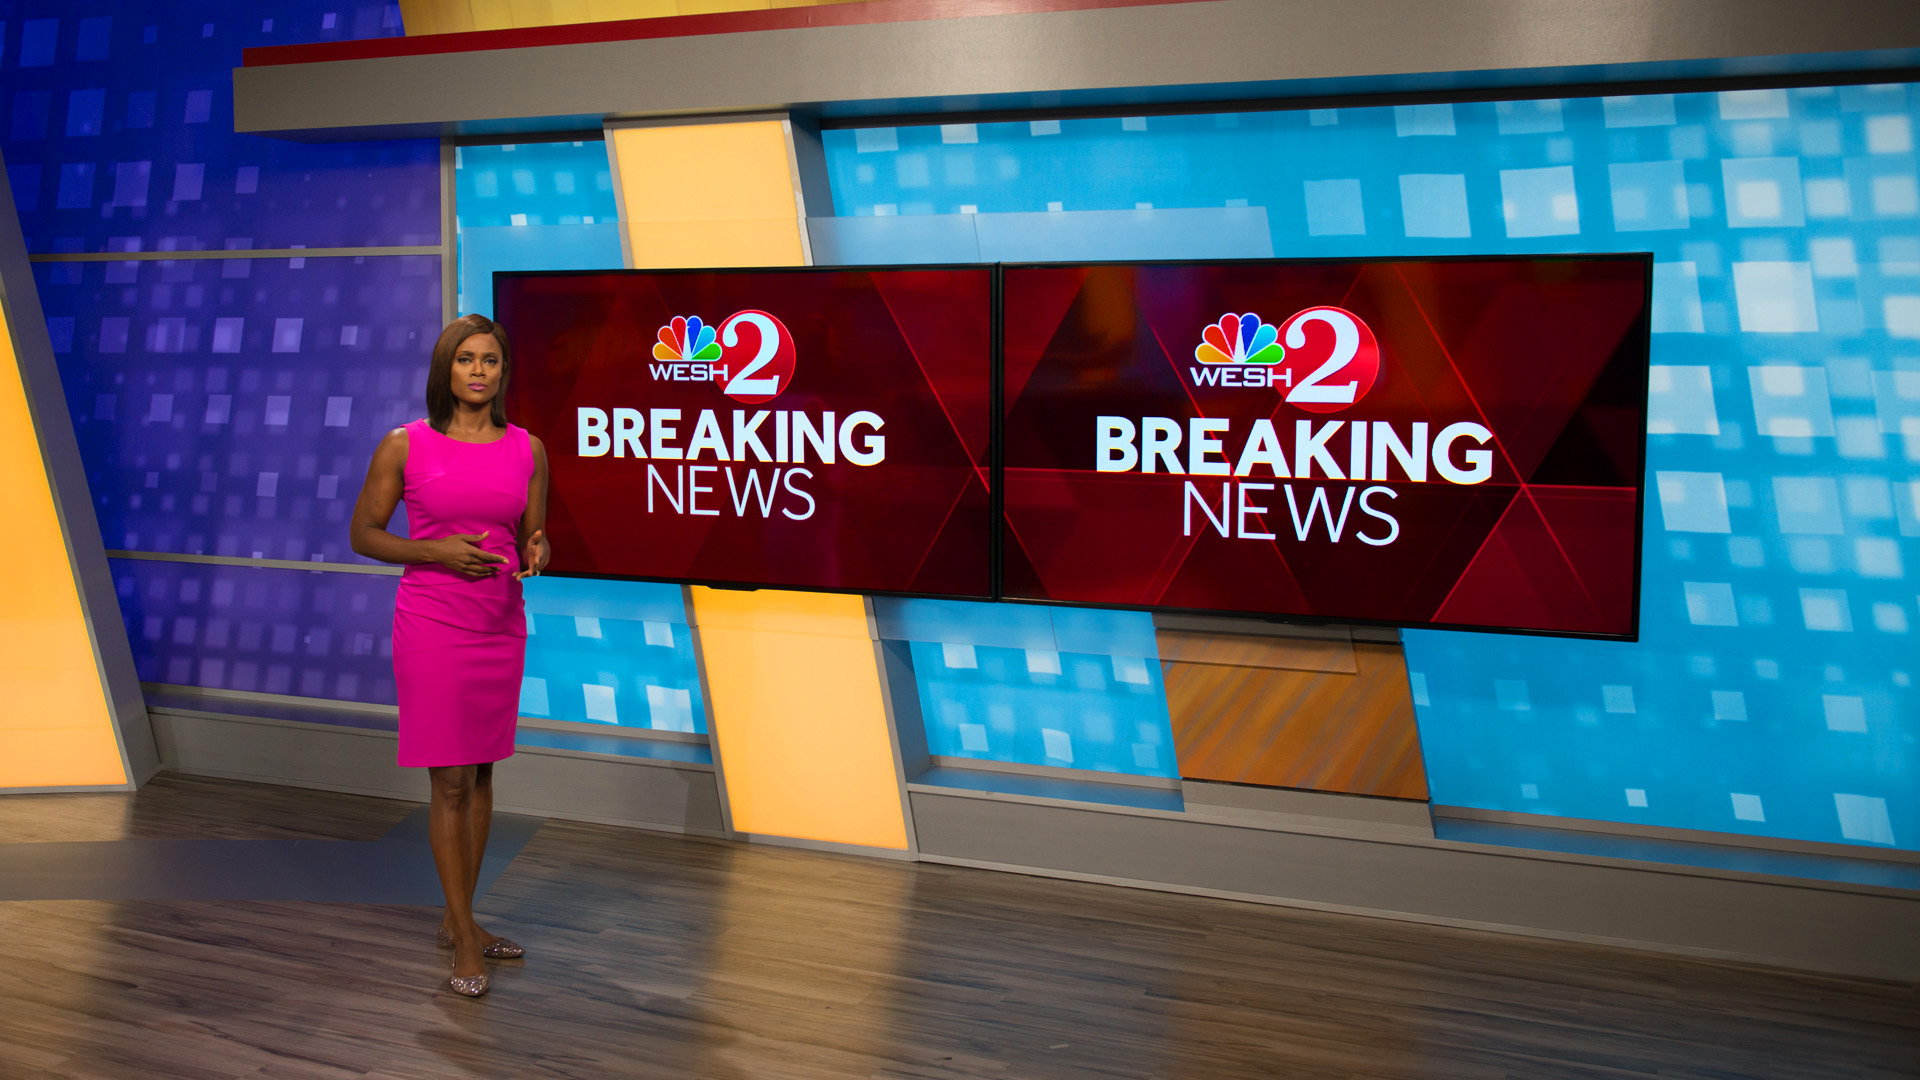 ncs_wesh-2-news-tv-studio-devlin_0005